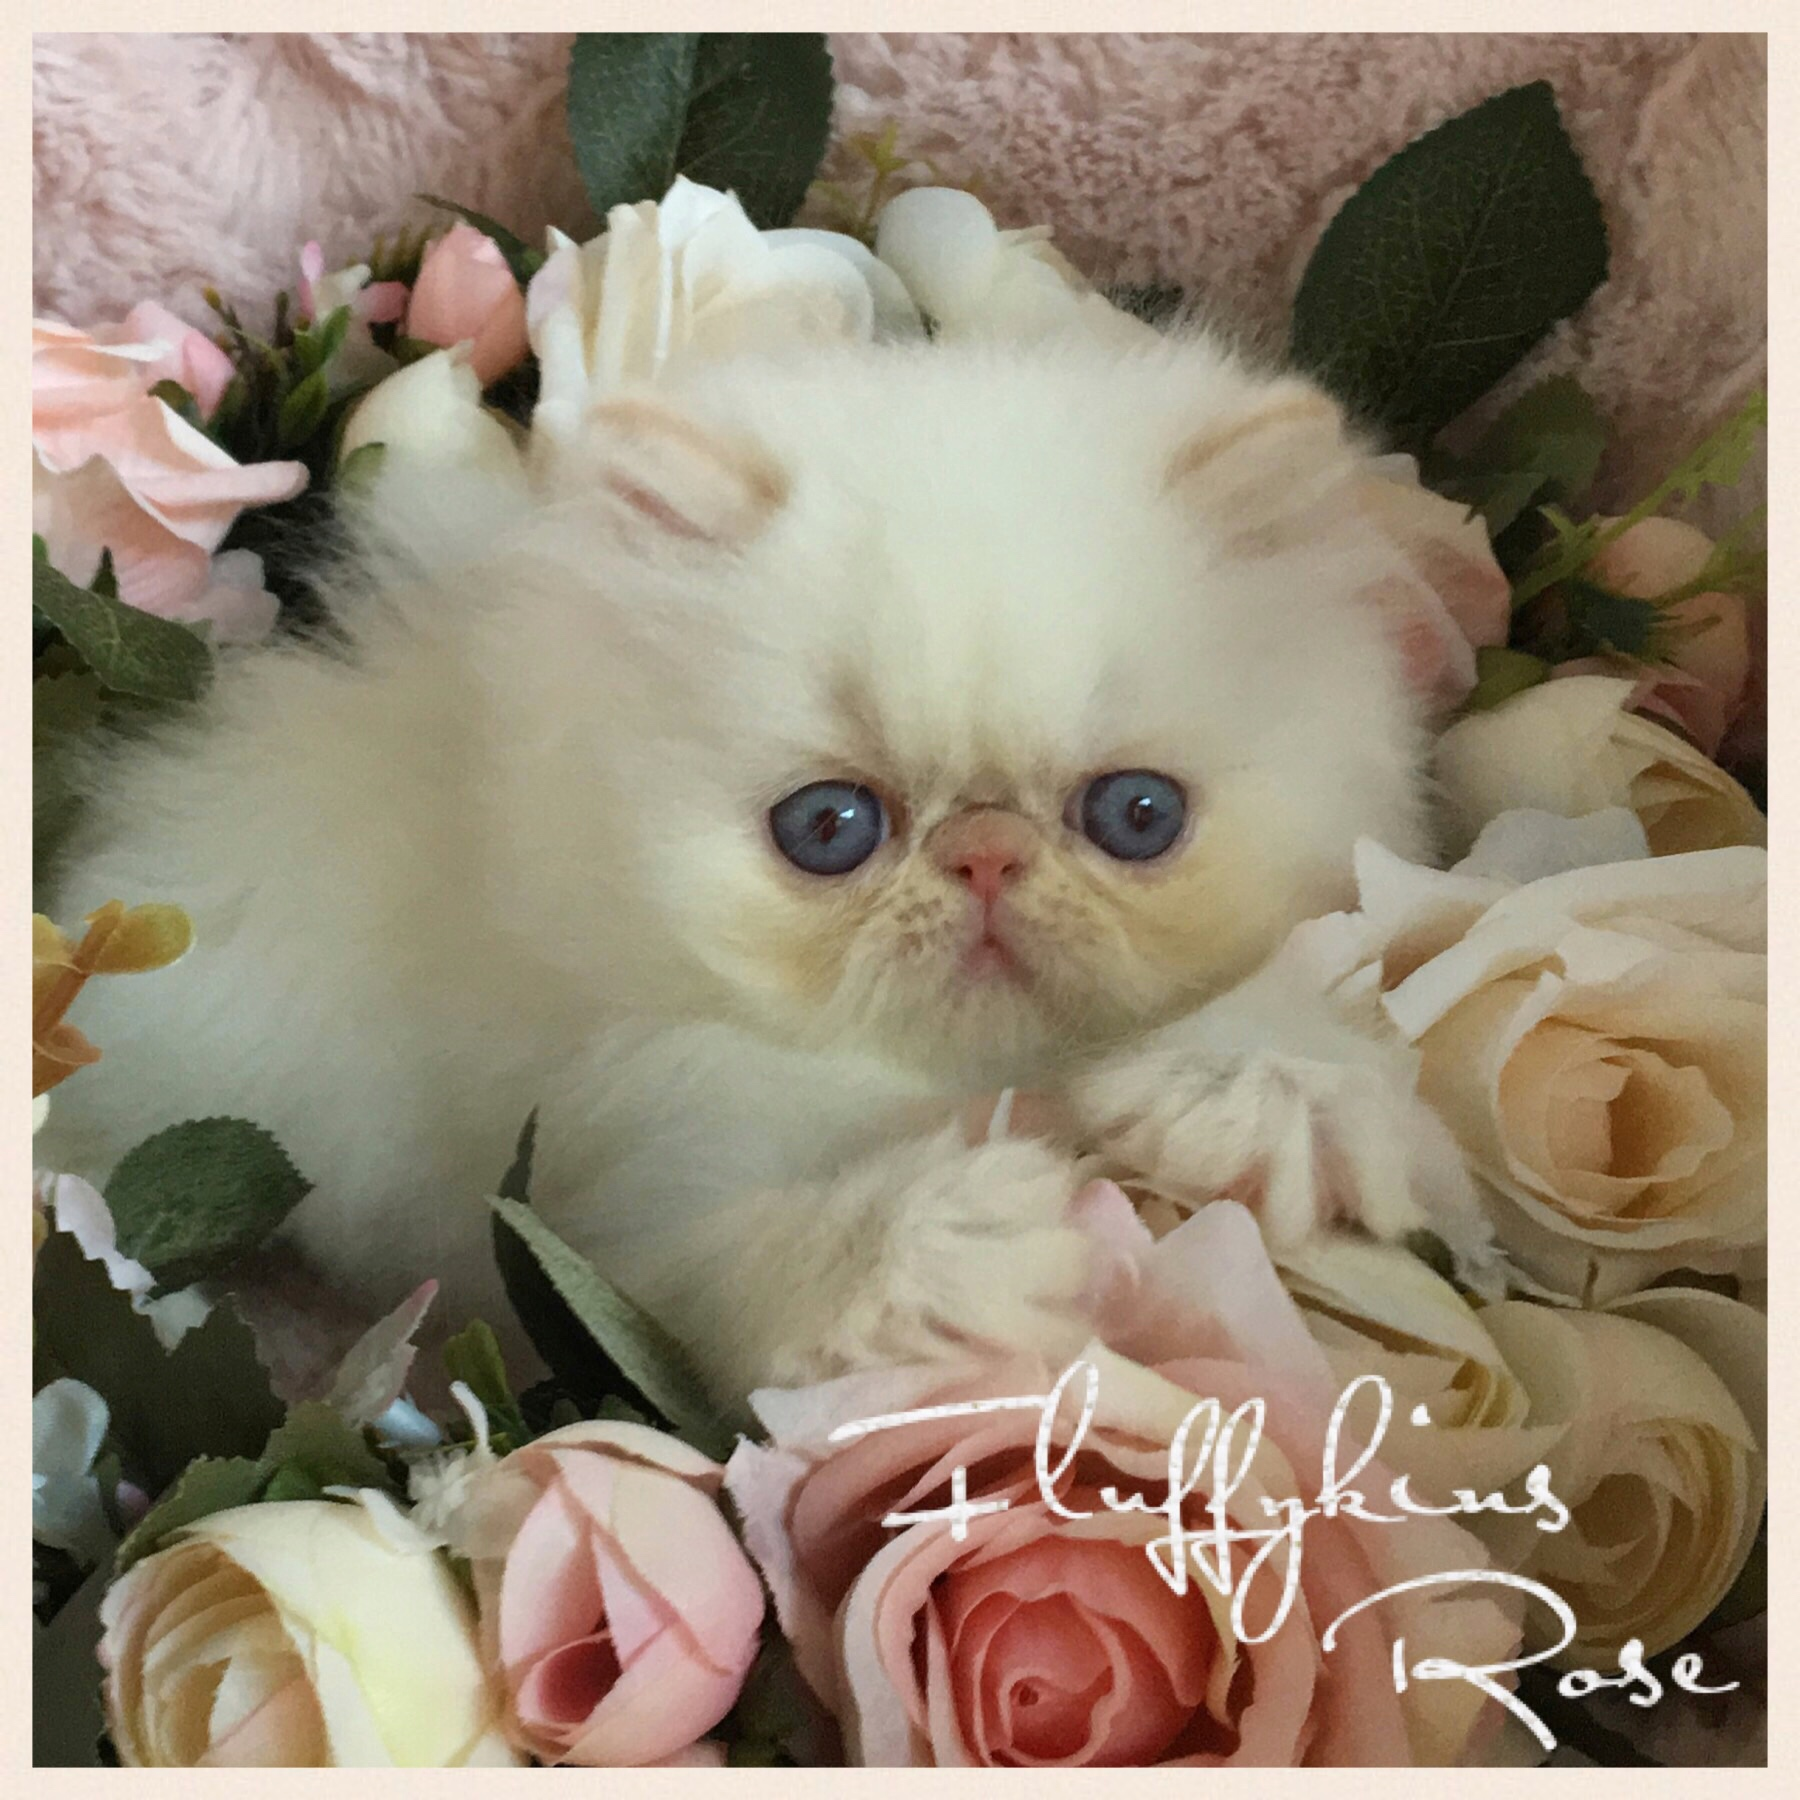 Fluffykins Rose - Cream Colourpoint Persian  gallery image